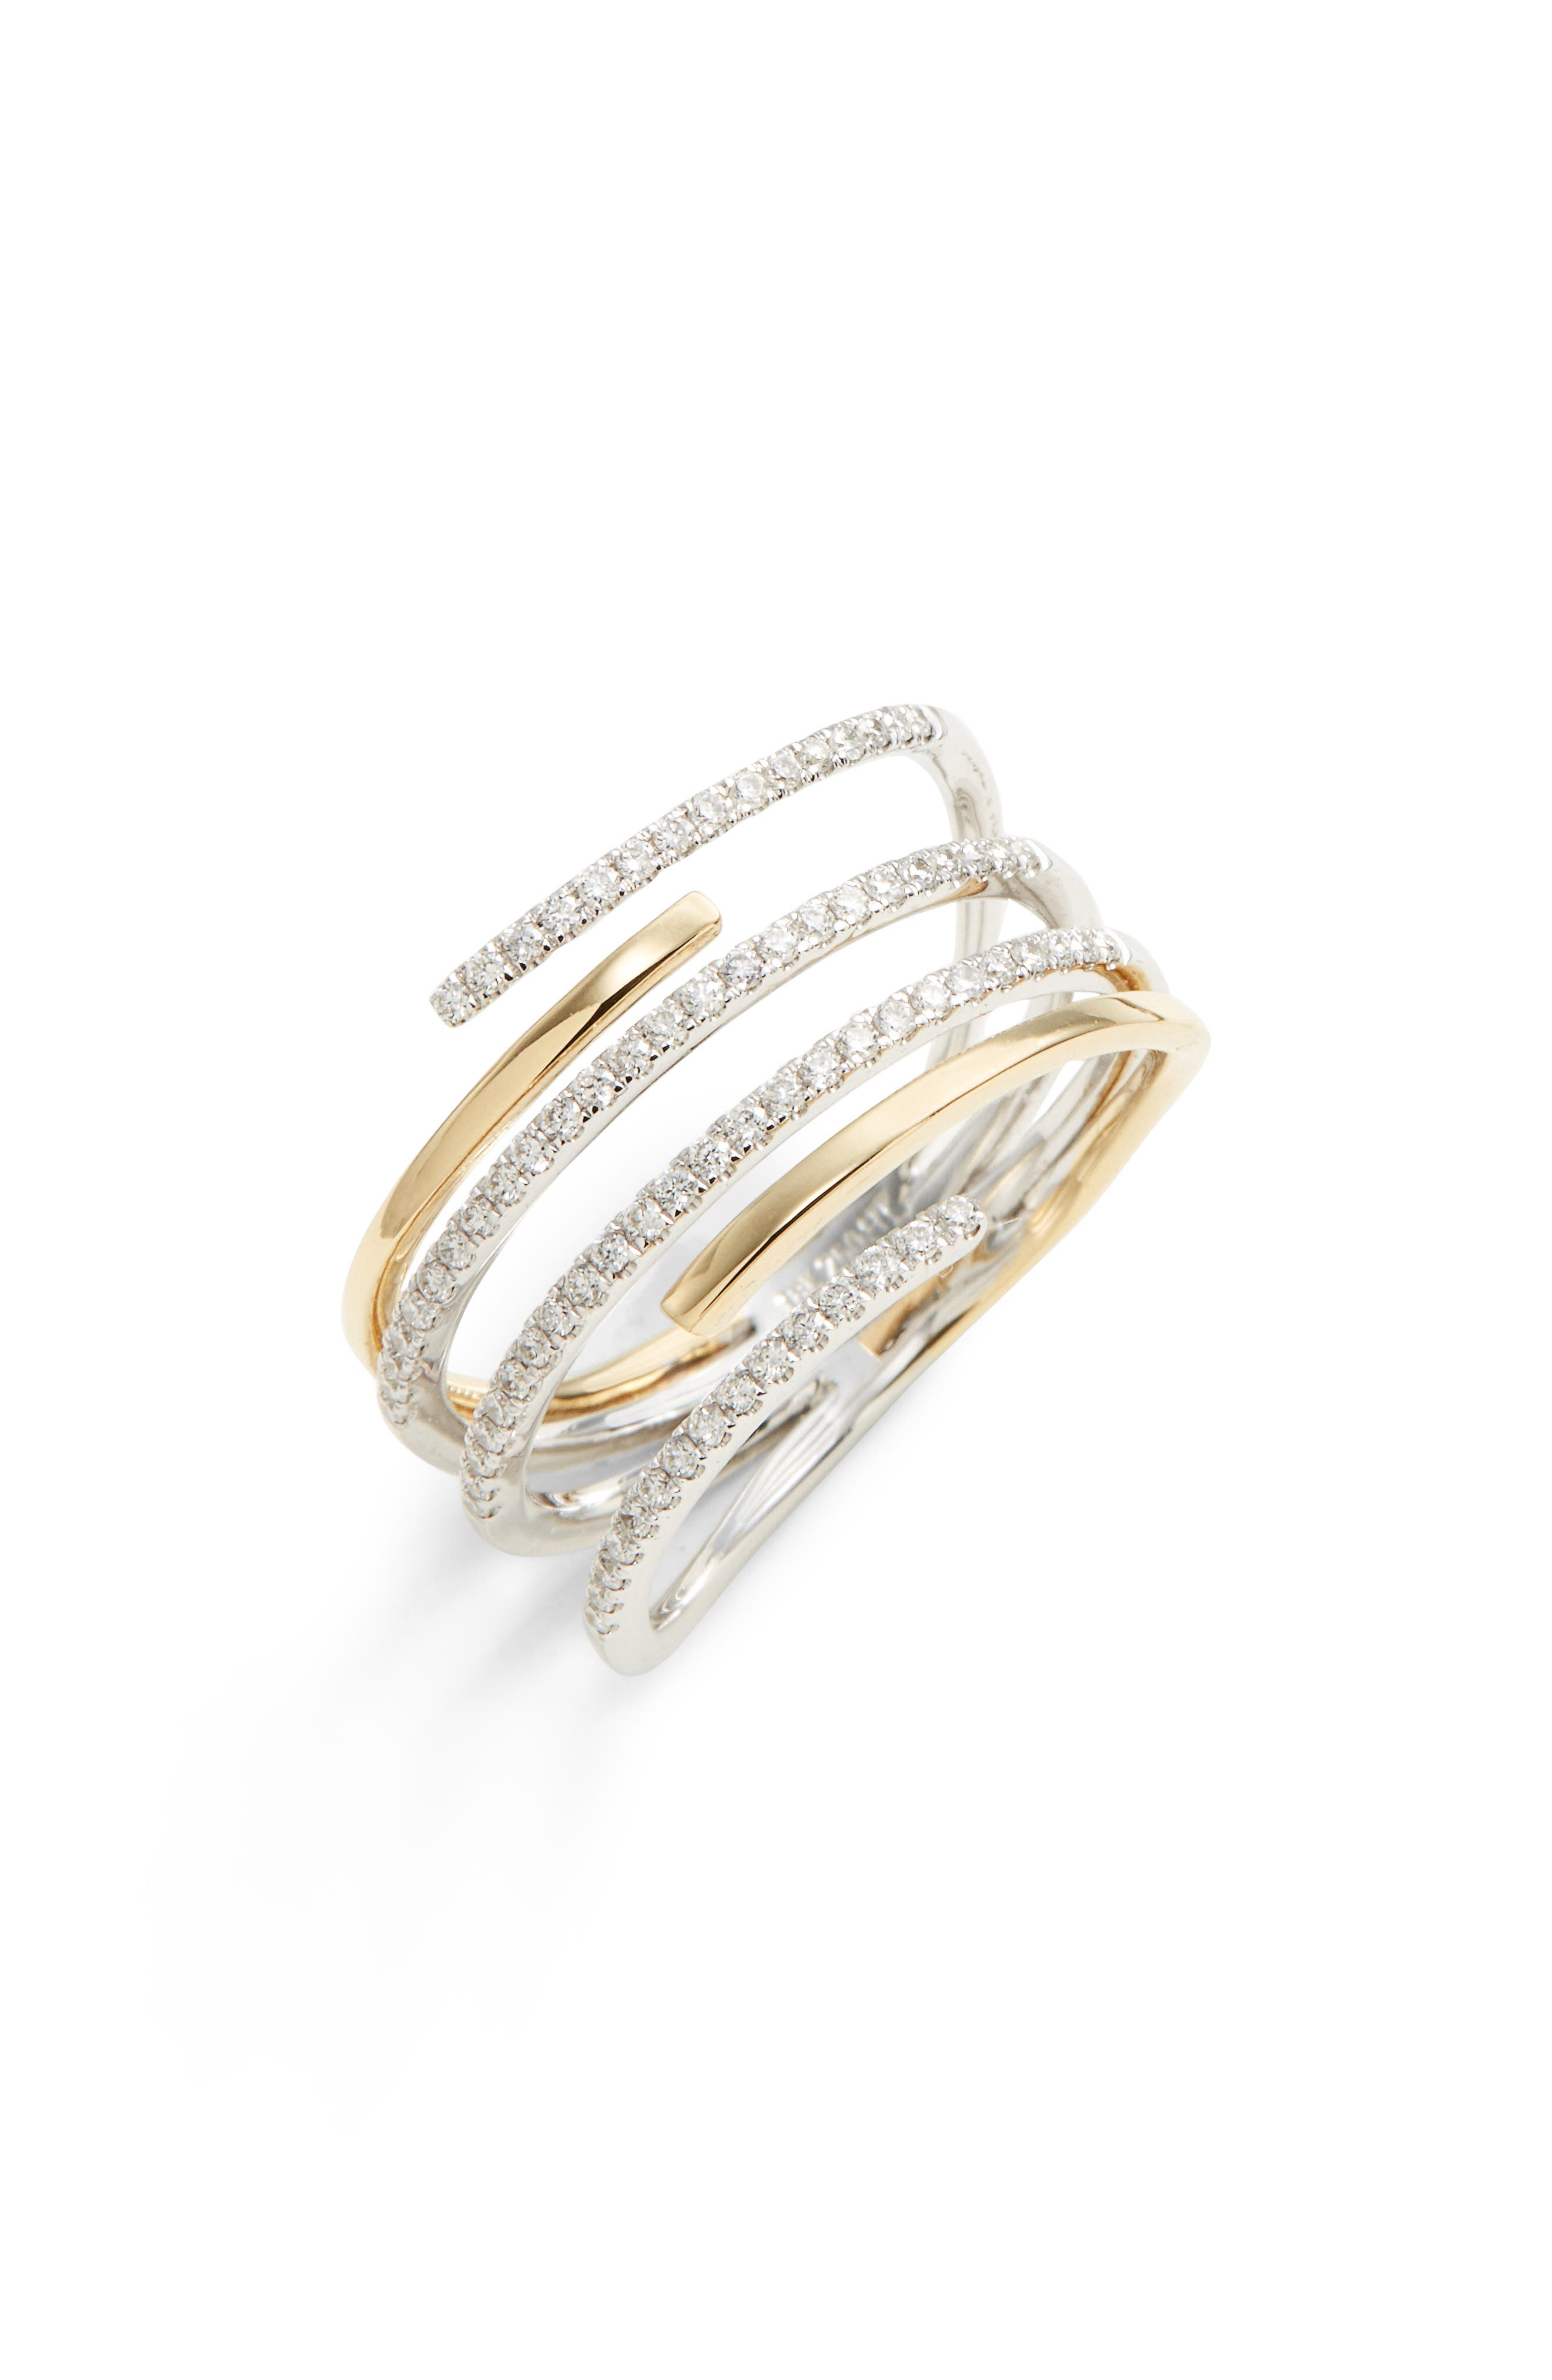 BONY LEVY, Openwork Diamond Ring, Main thumbnail 1, color, YELLOW GOLD/ WHITE GOLD